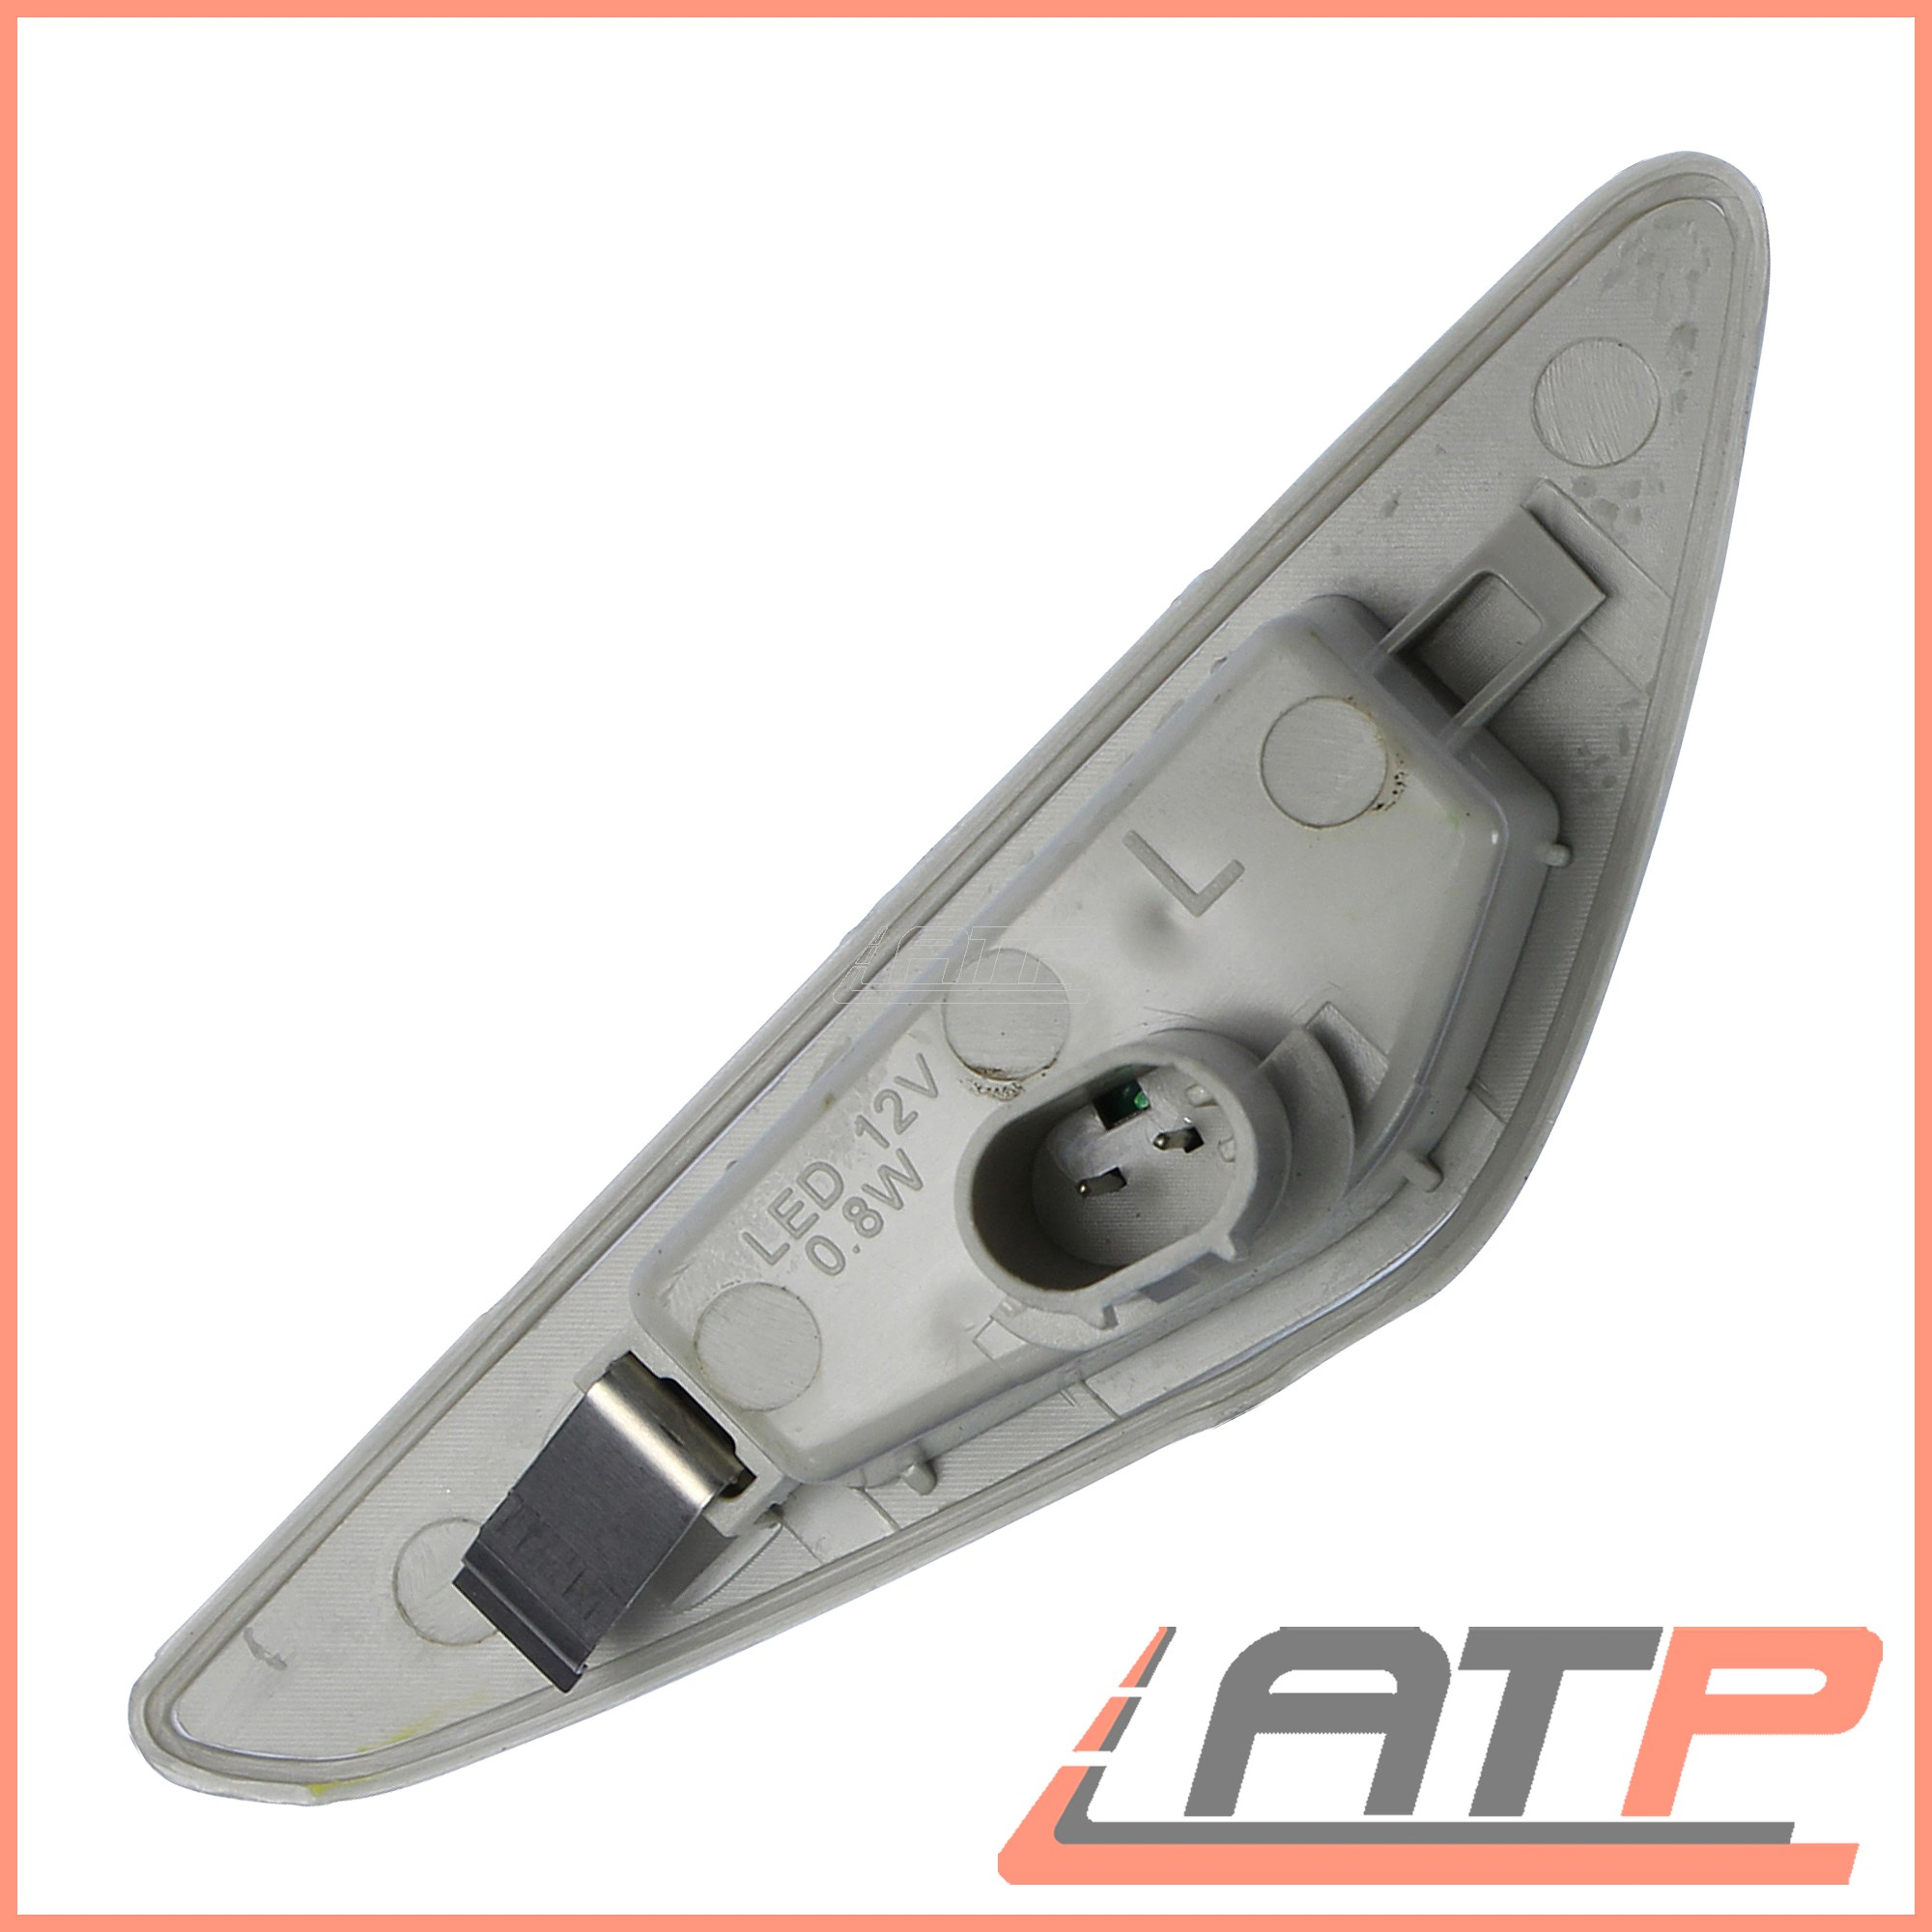 2X-LED-INDICATOR-TURN-SIGNAL-SIDE-REPEAT-LEFT-RIGHT-BMW-3-SERIES-E46 thumbnail 3